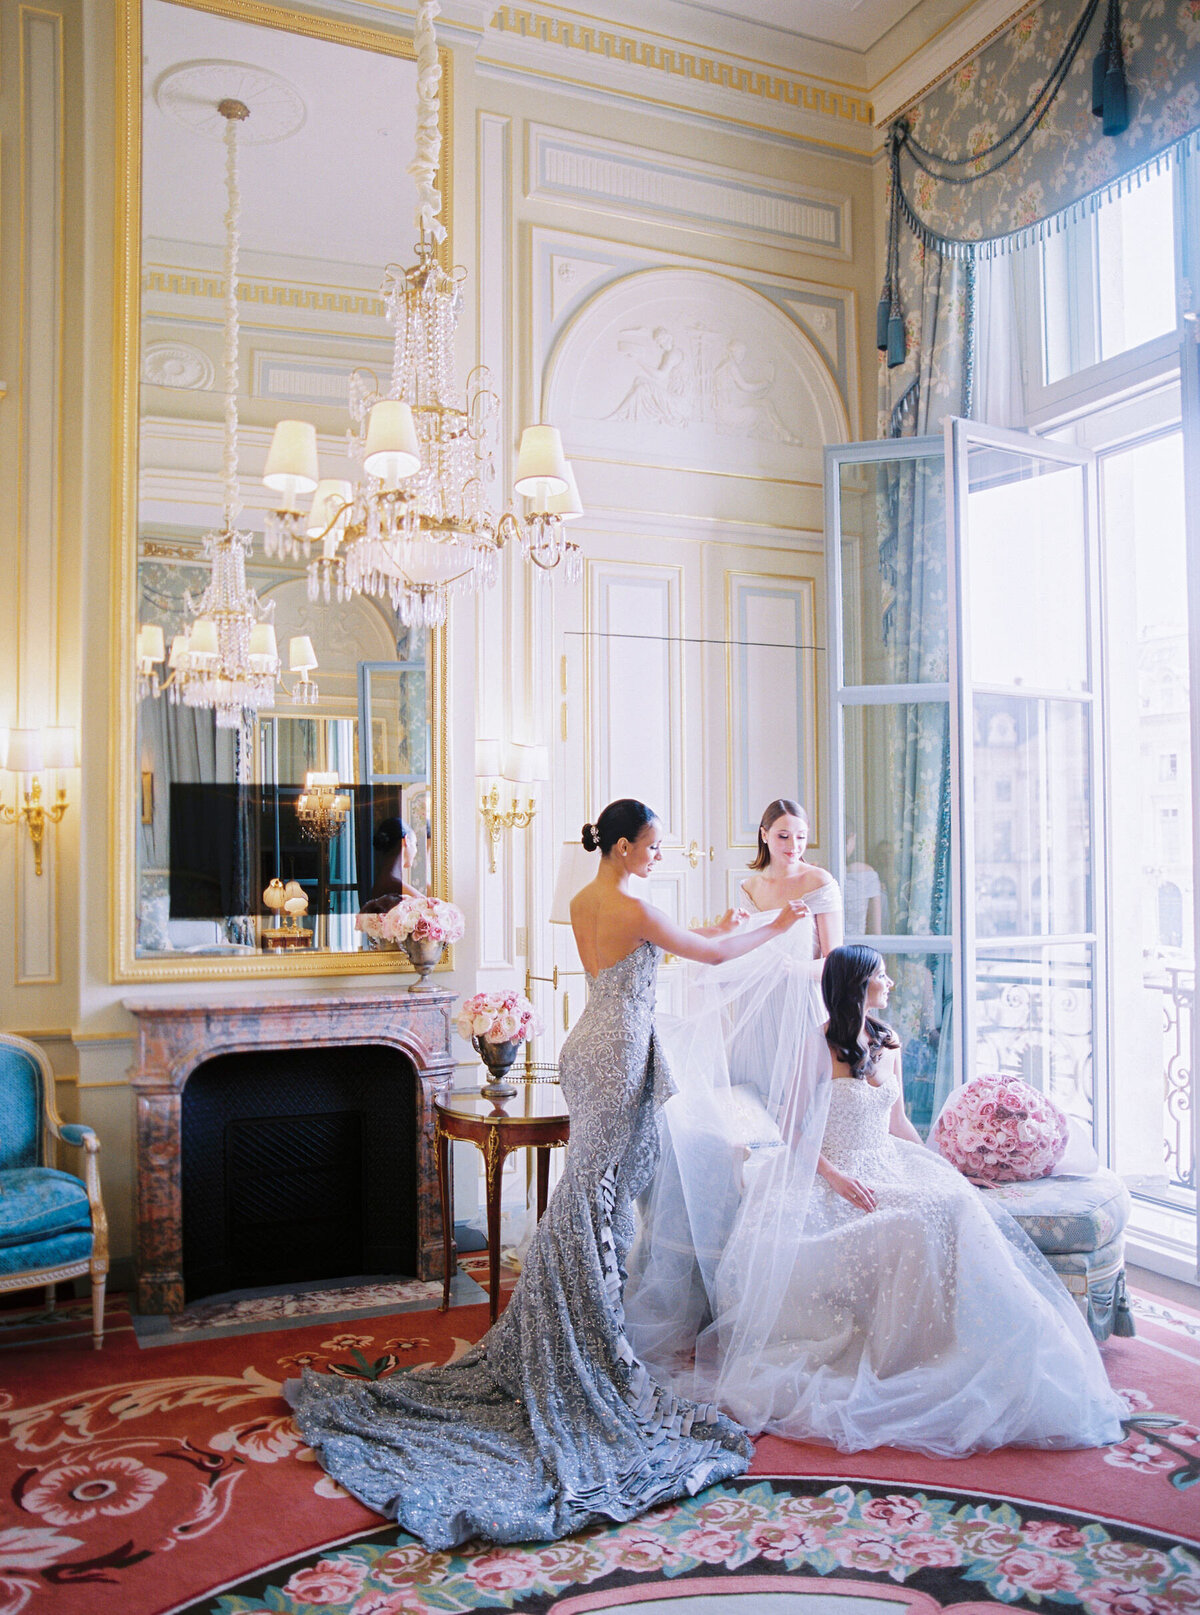 wedding-photographer-in-ritz-paris (15 of 29)